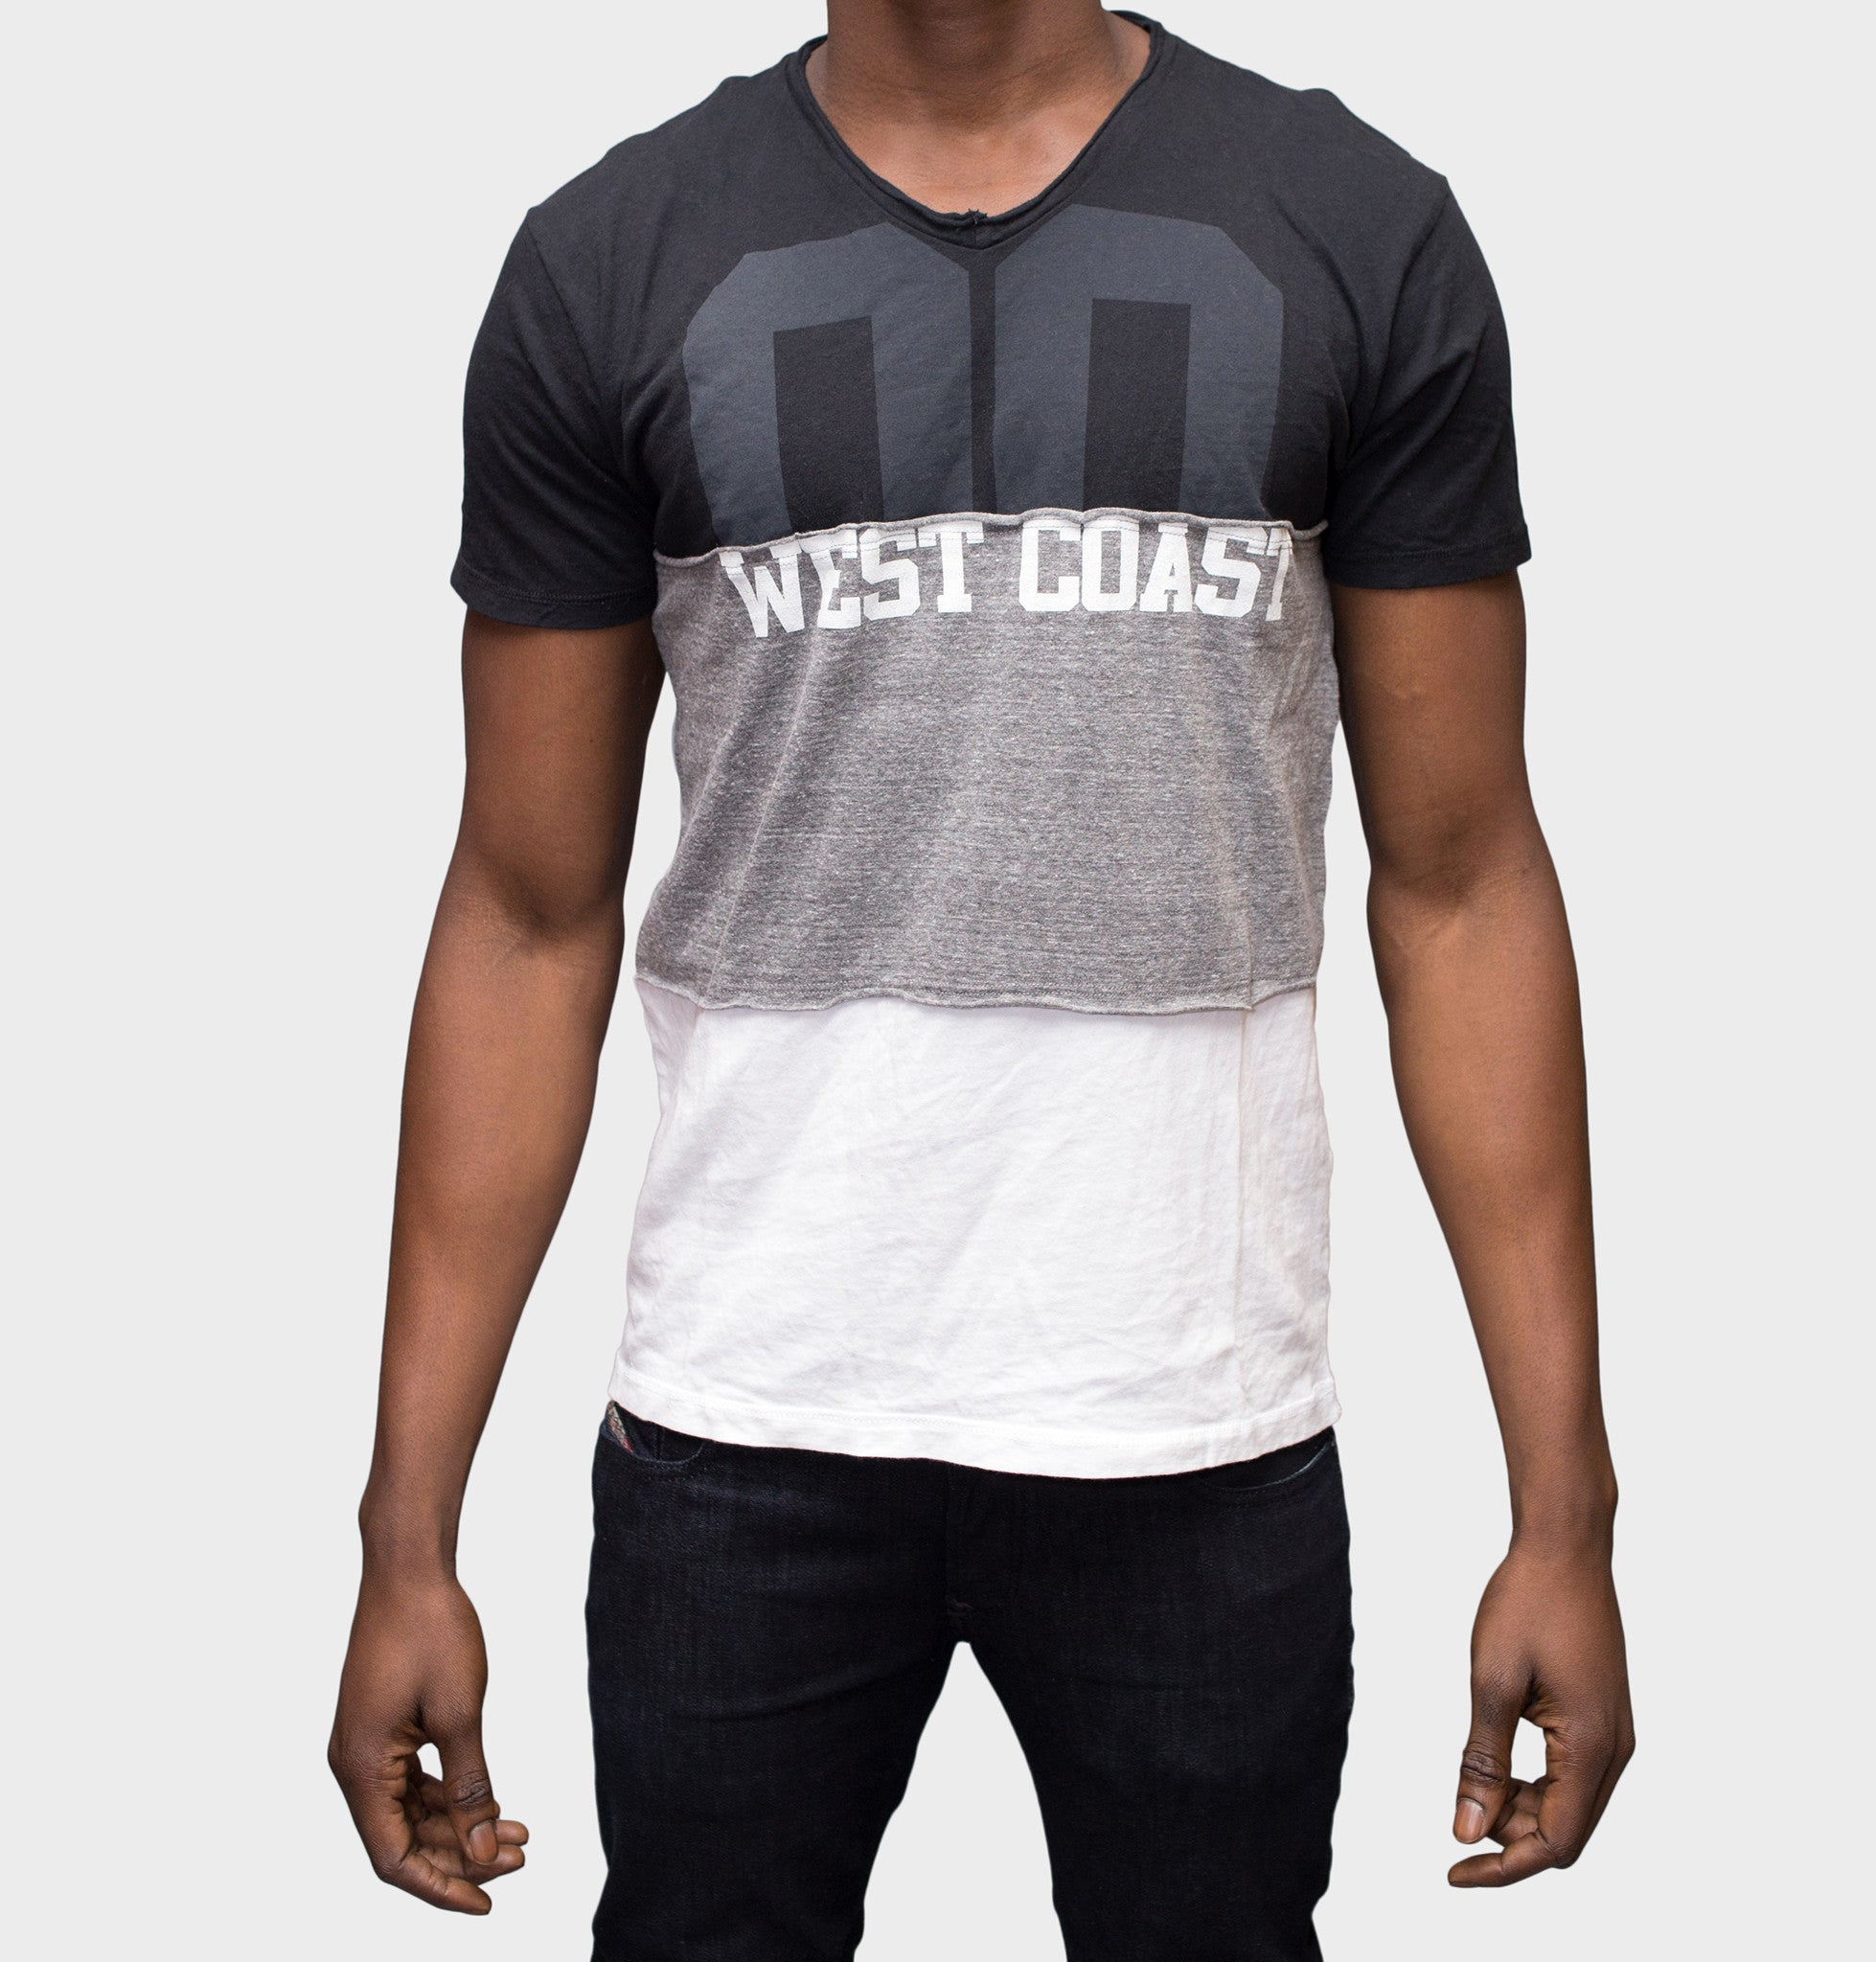 Westcoast V-Neck Graphic Tee